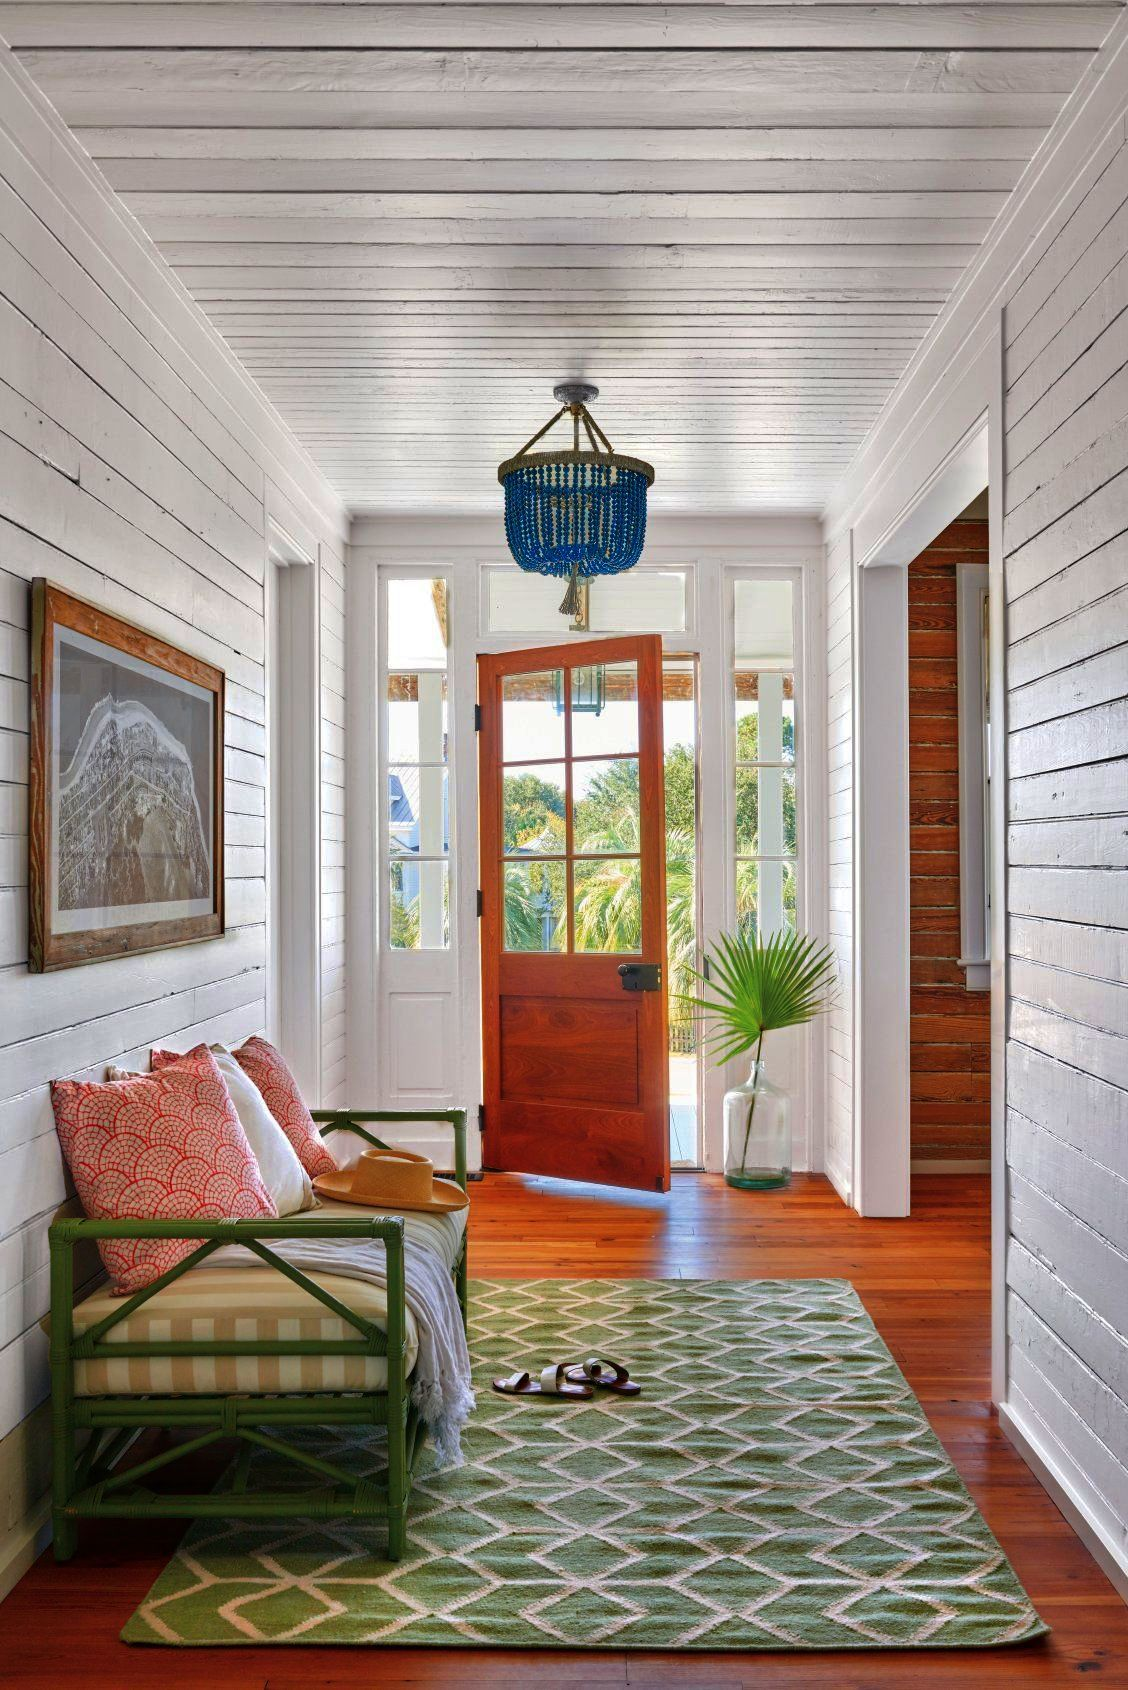 The Best Interior Design Advice In The World Cottage Style Interiors Cottage Style Homes Beach Cottage Style